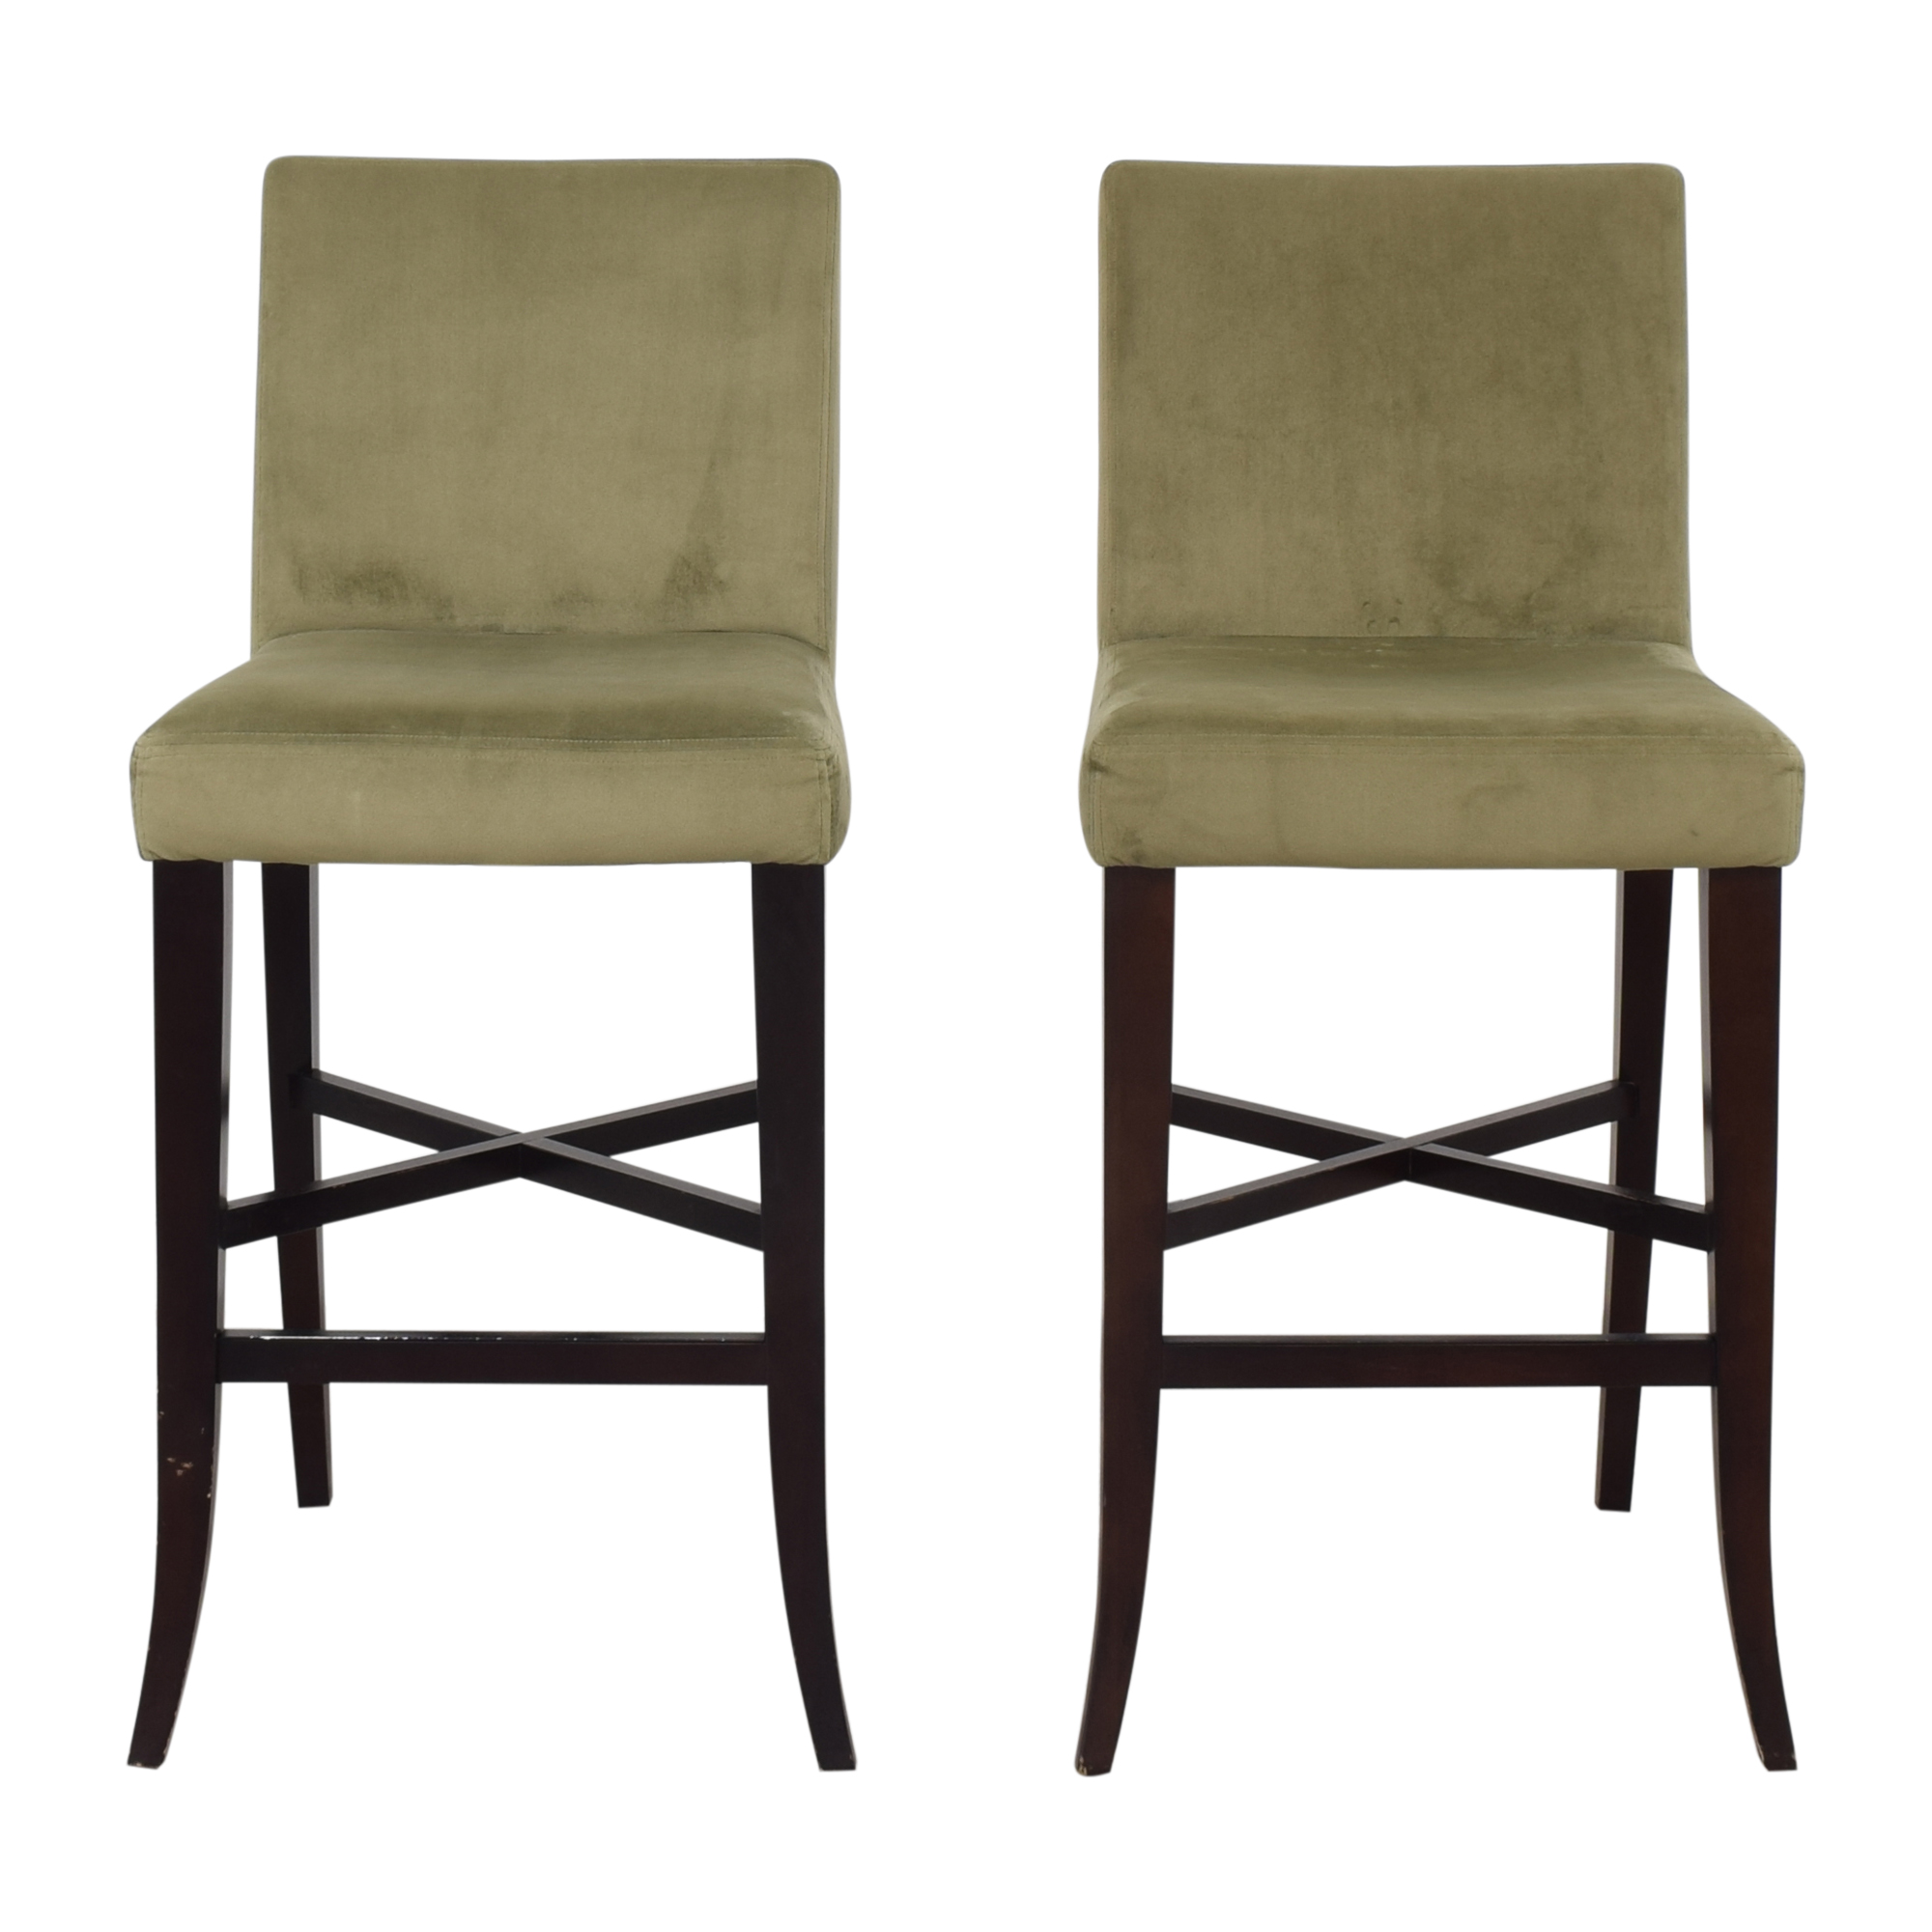 Crate & Barrel Crate & Barrel Upholstered Bar Stools Chairs